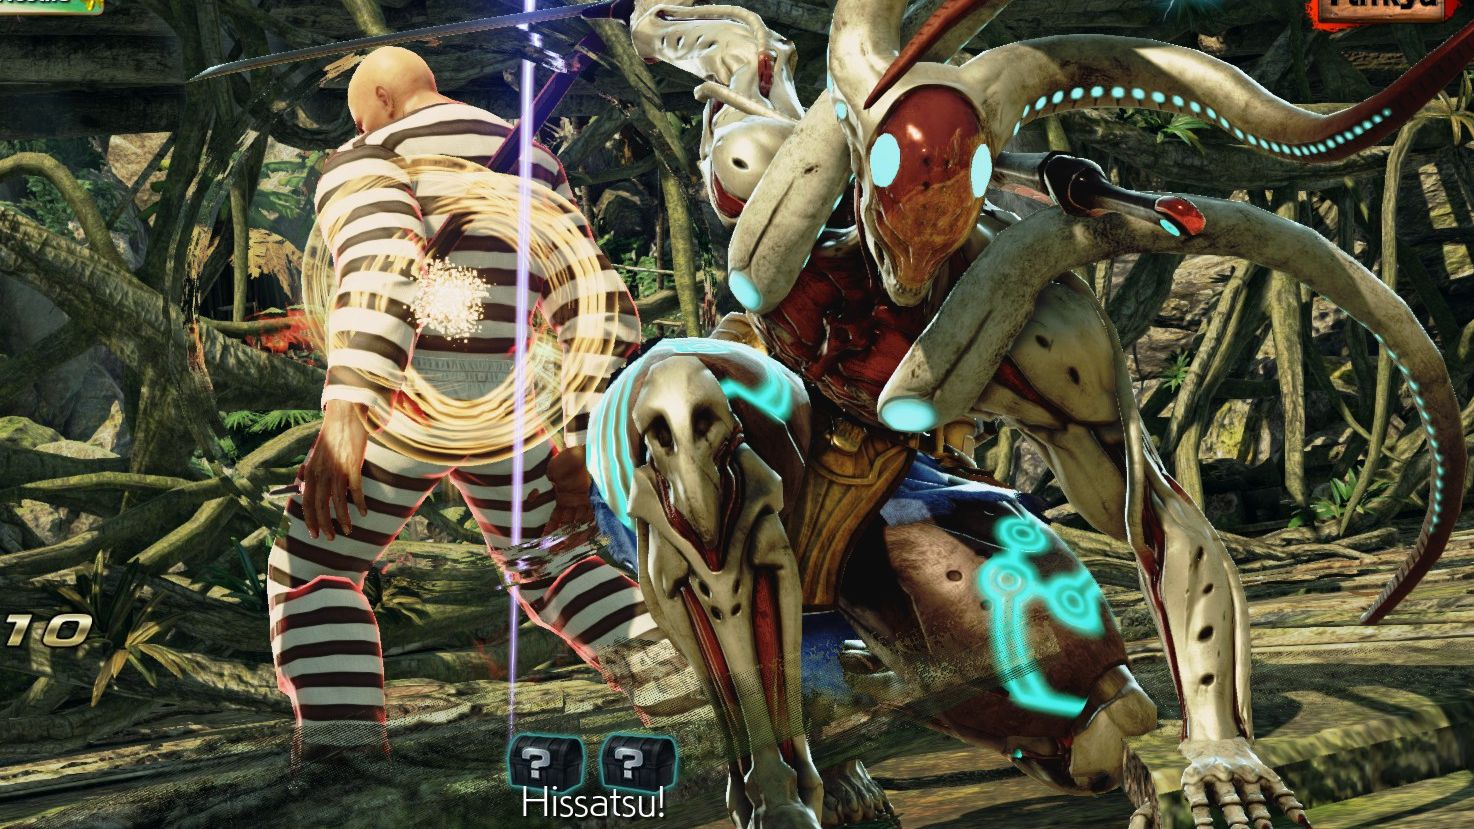 A screenshot of Tekken character Yoshimitsu crouched after performing an attack. He is humanoid in shape, but looks as if he is wearing armour made of bone. Long tentacle-like spurs protrude from the back of his shoulders and head.